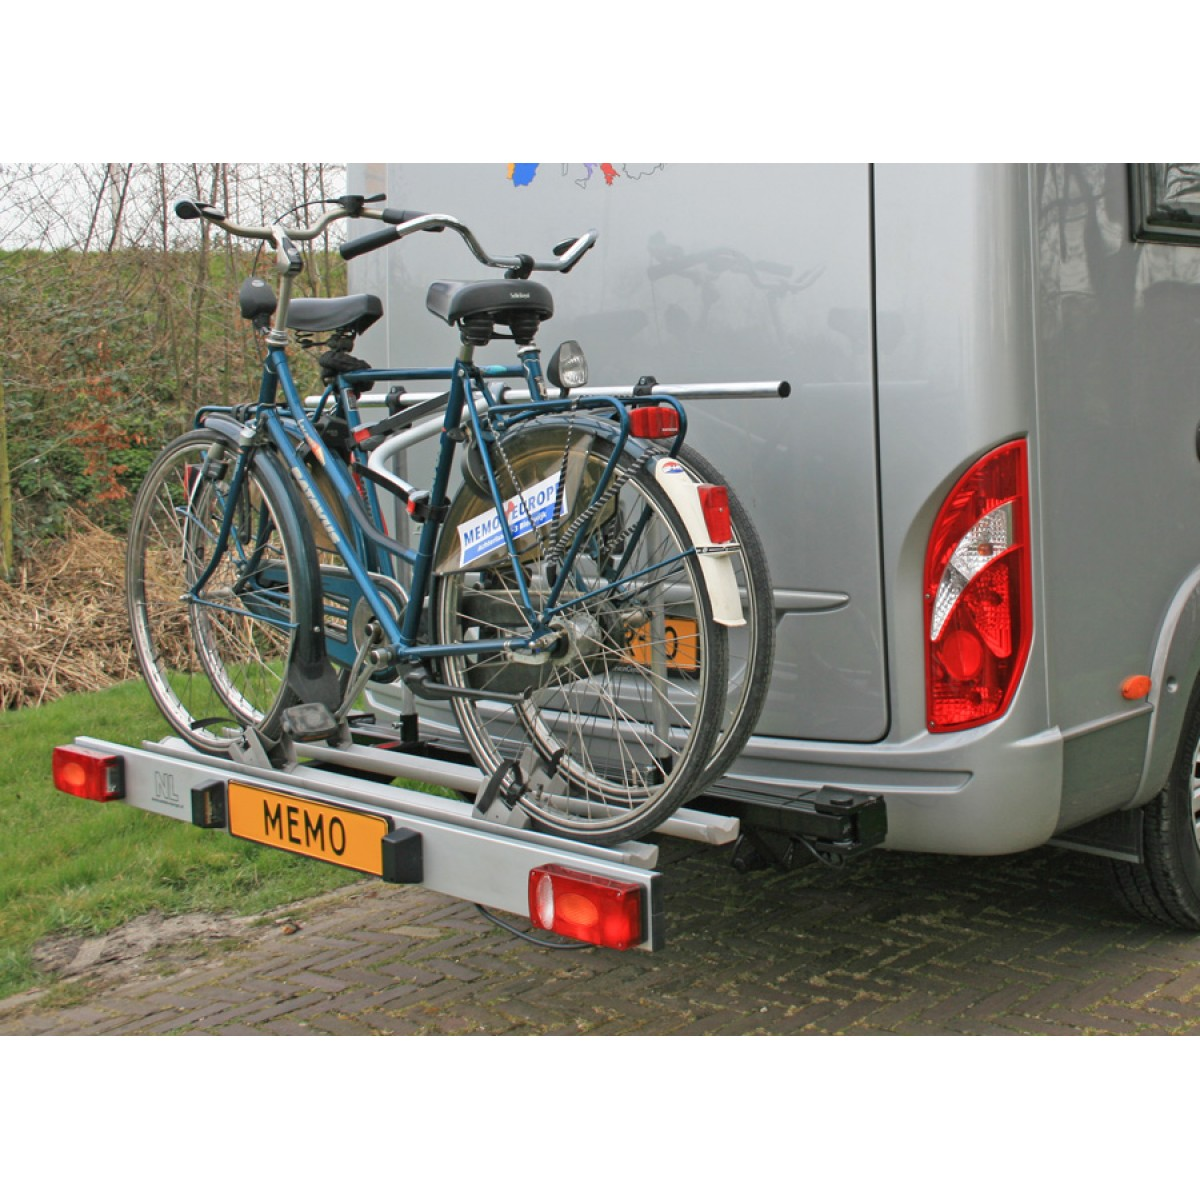 Bike Campers Bike Carrier For Compact Campers